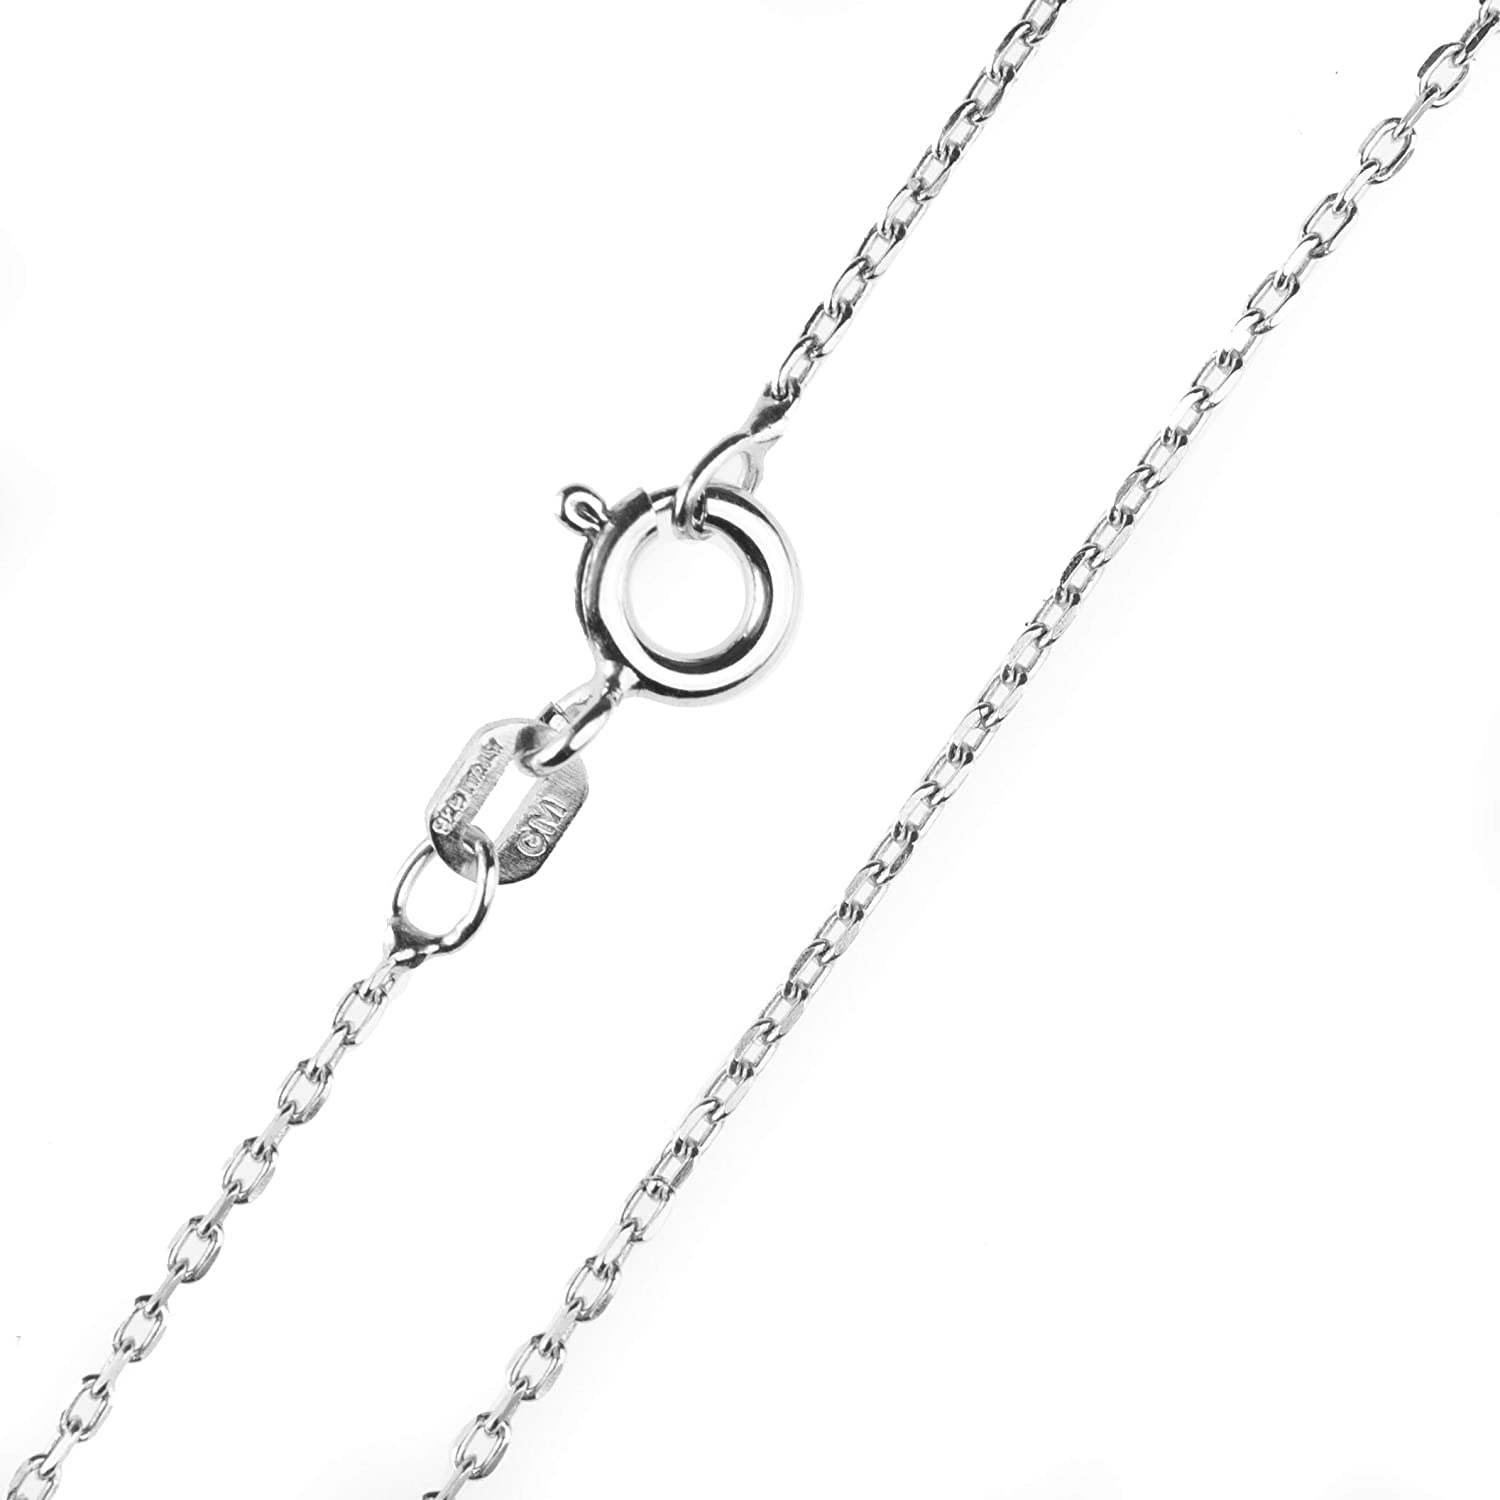 Sterling Silver Cable Chain 20